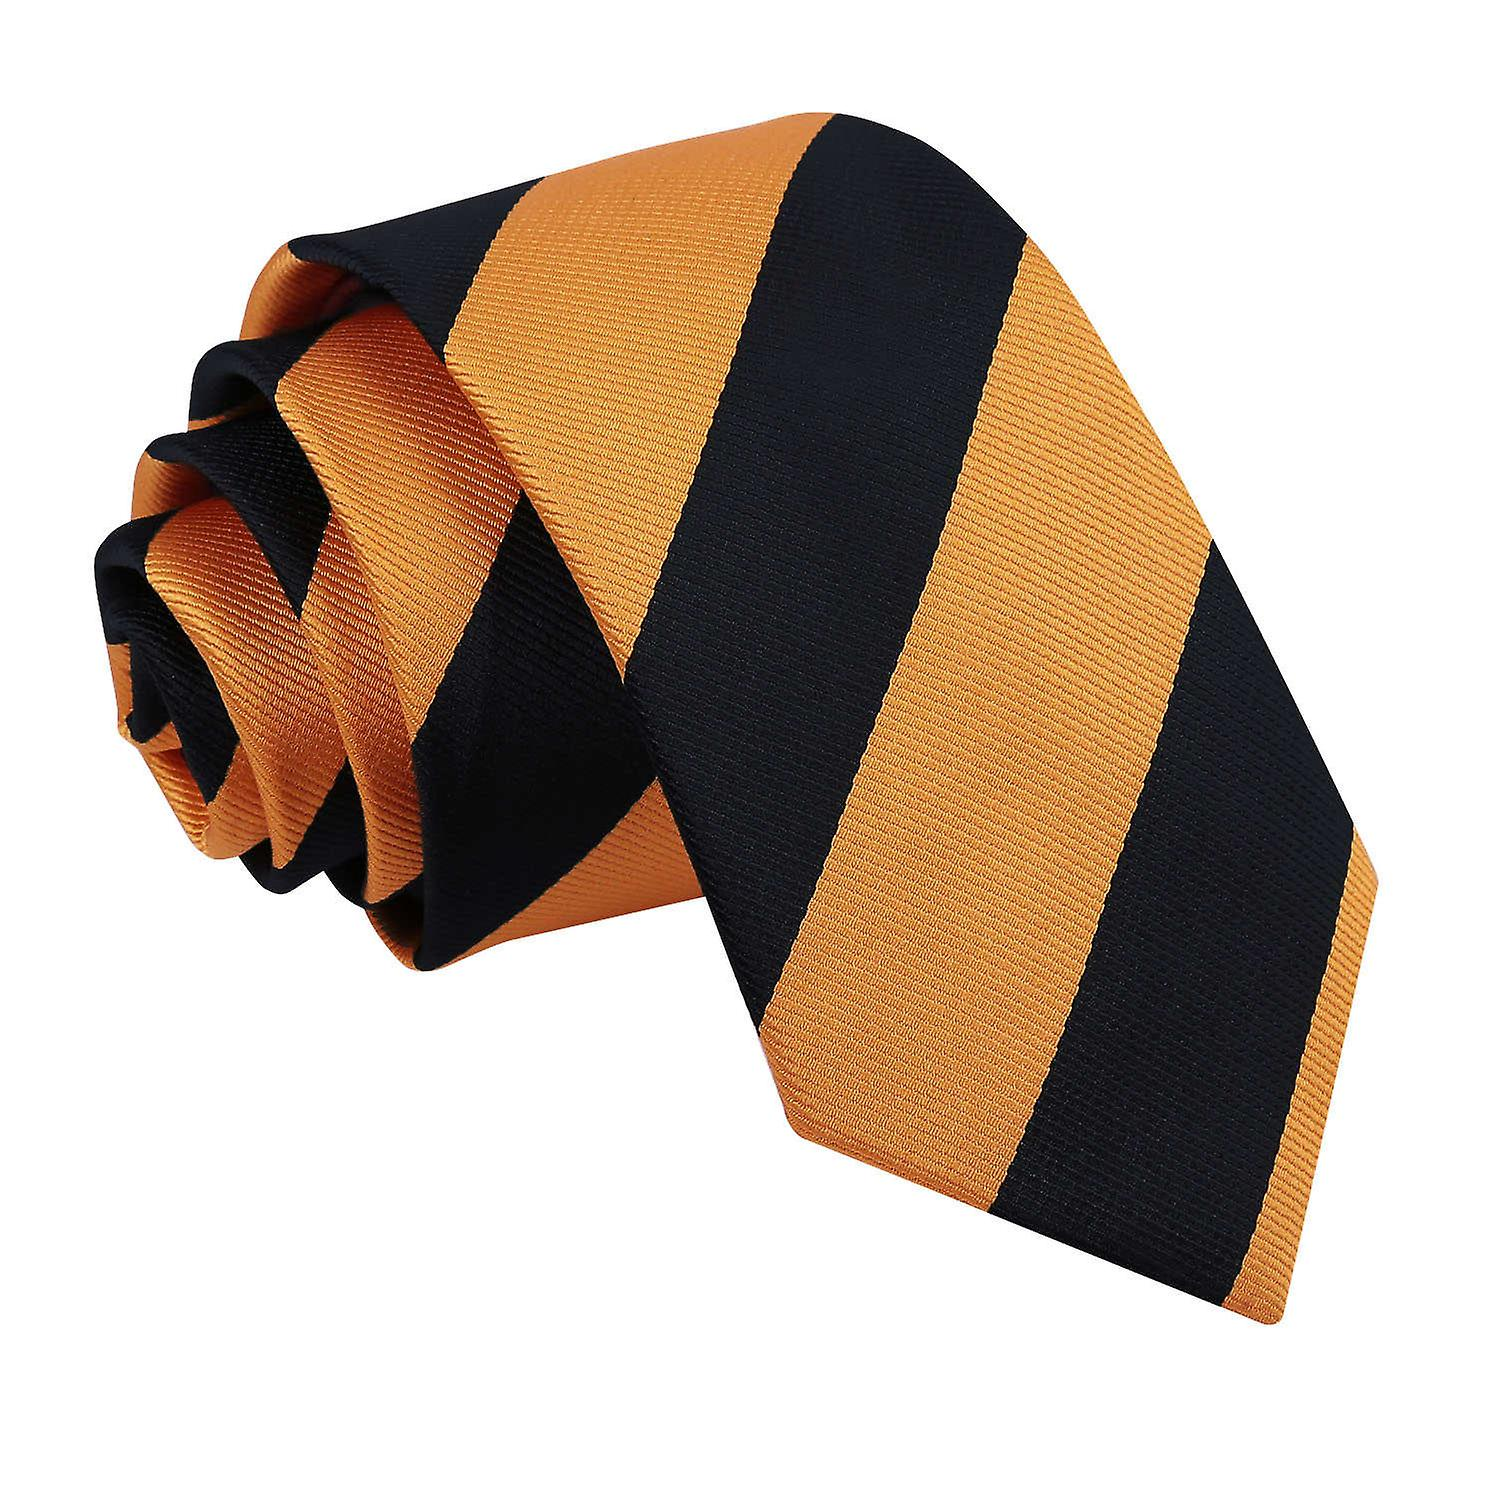 Striped Orange & Black Slim Tie